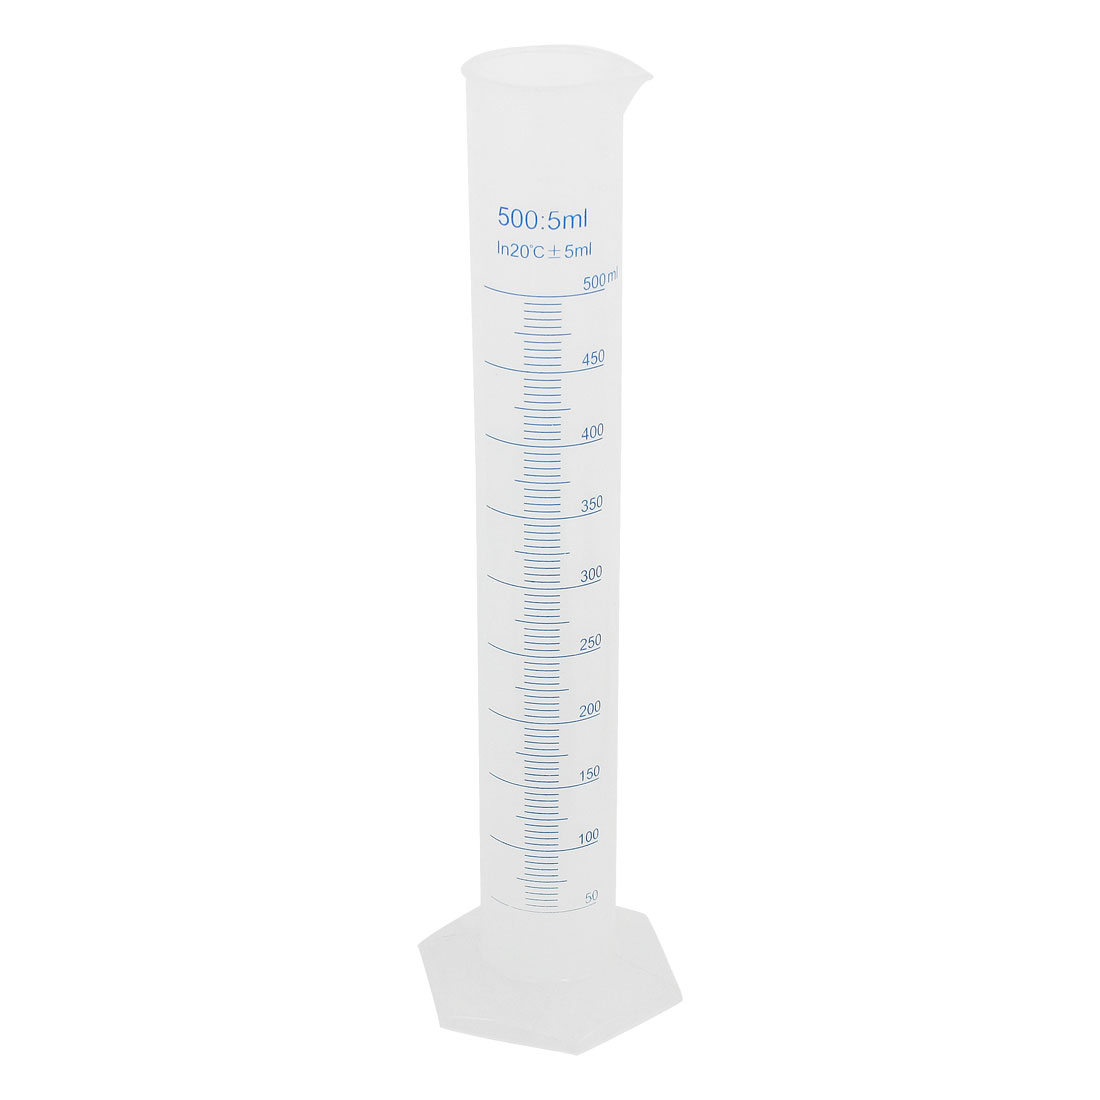 Lab Laboratory Test 36cm Height 500ml Transparent Plastic Graduated Cylinder Measuring Cup 5ml Tolerance